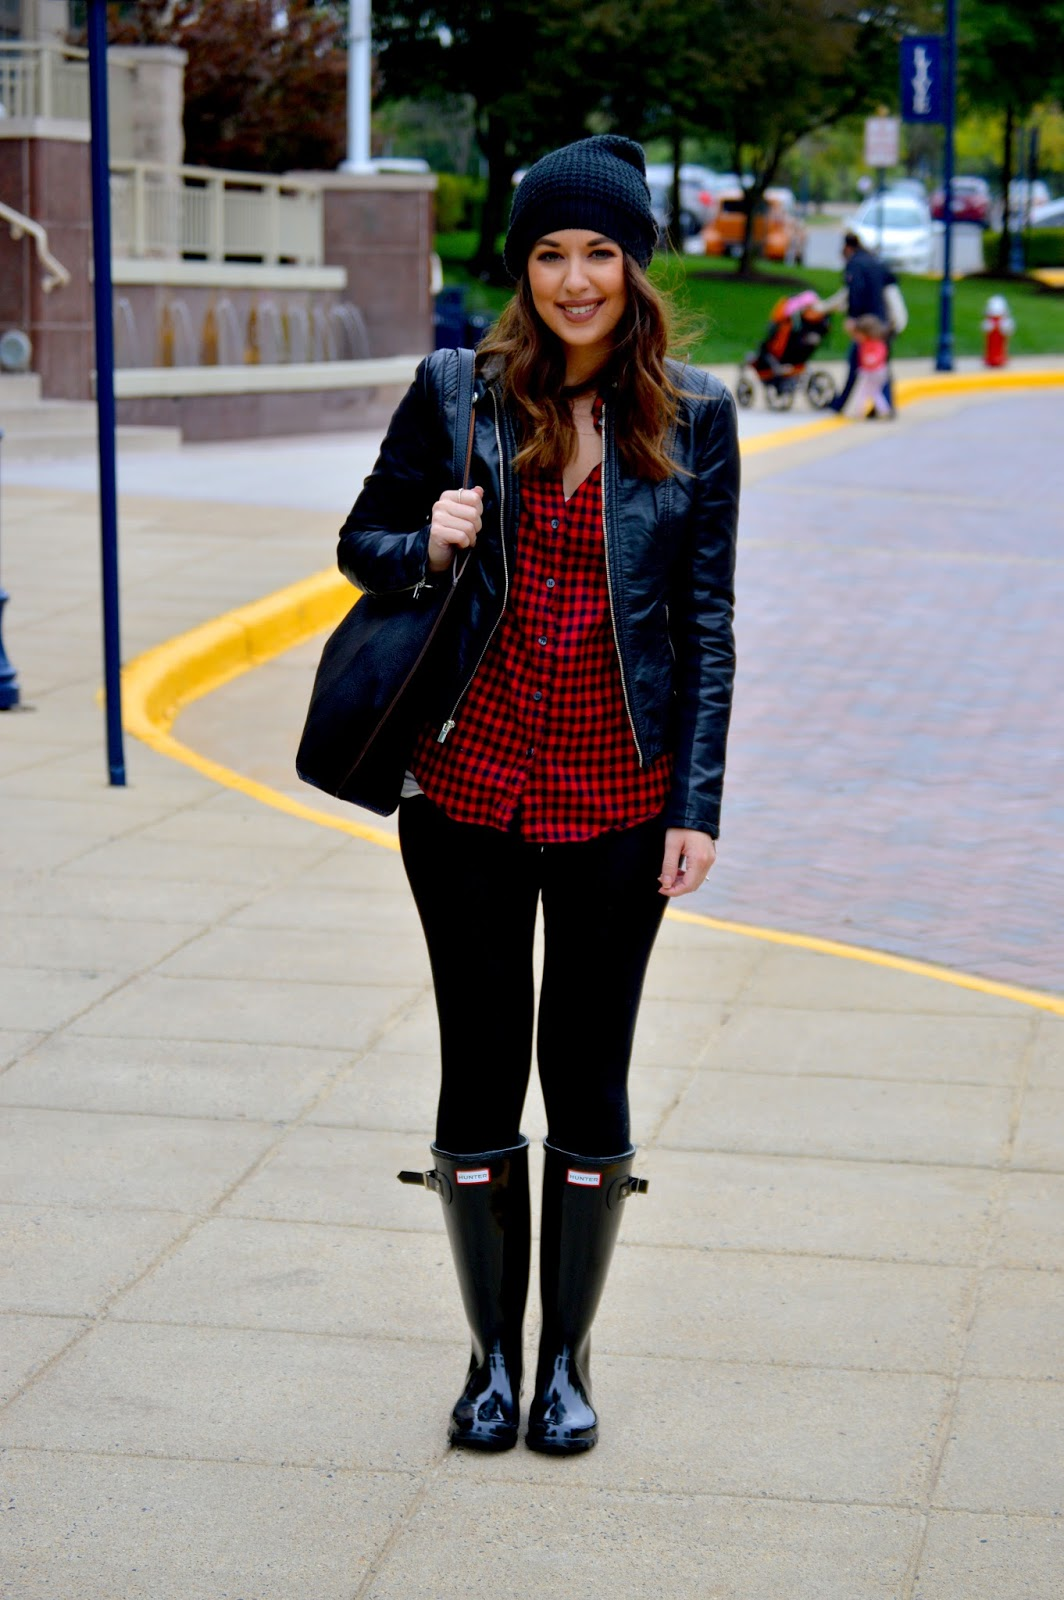 Rosy Outlook Rainy Day Outfit